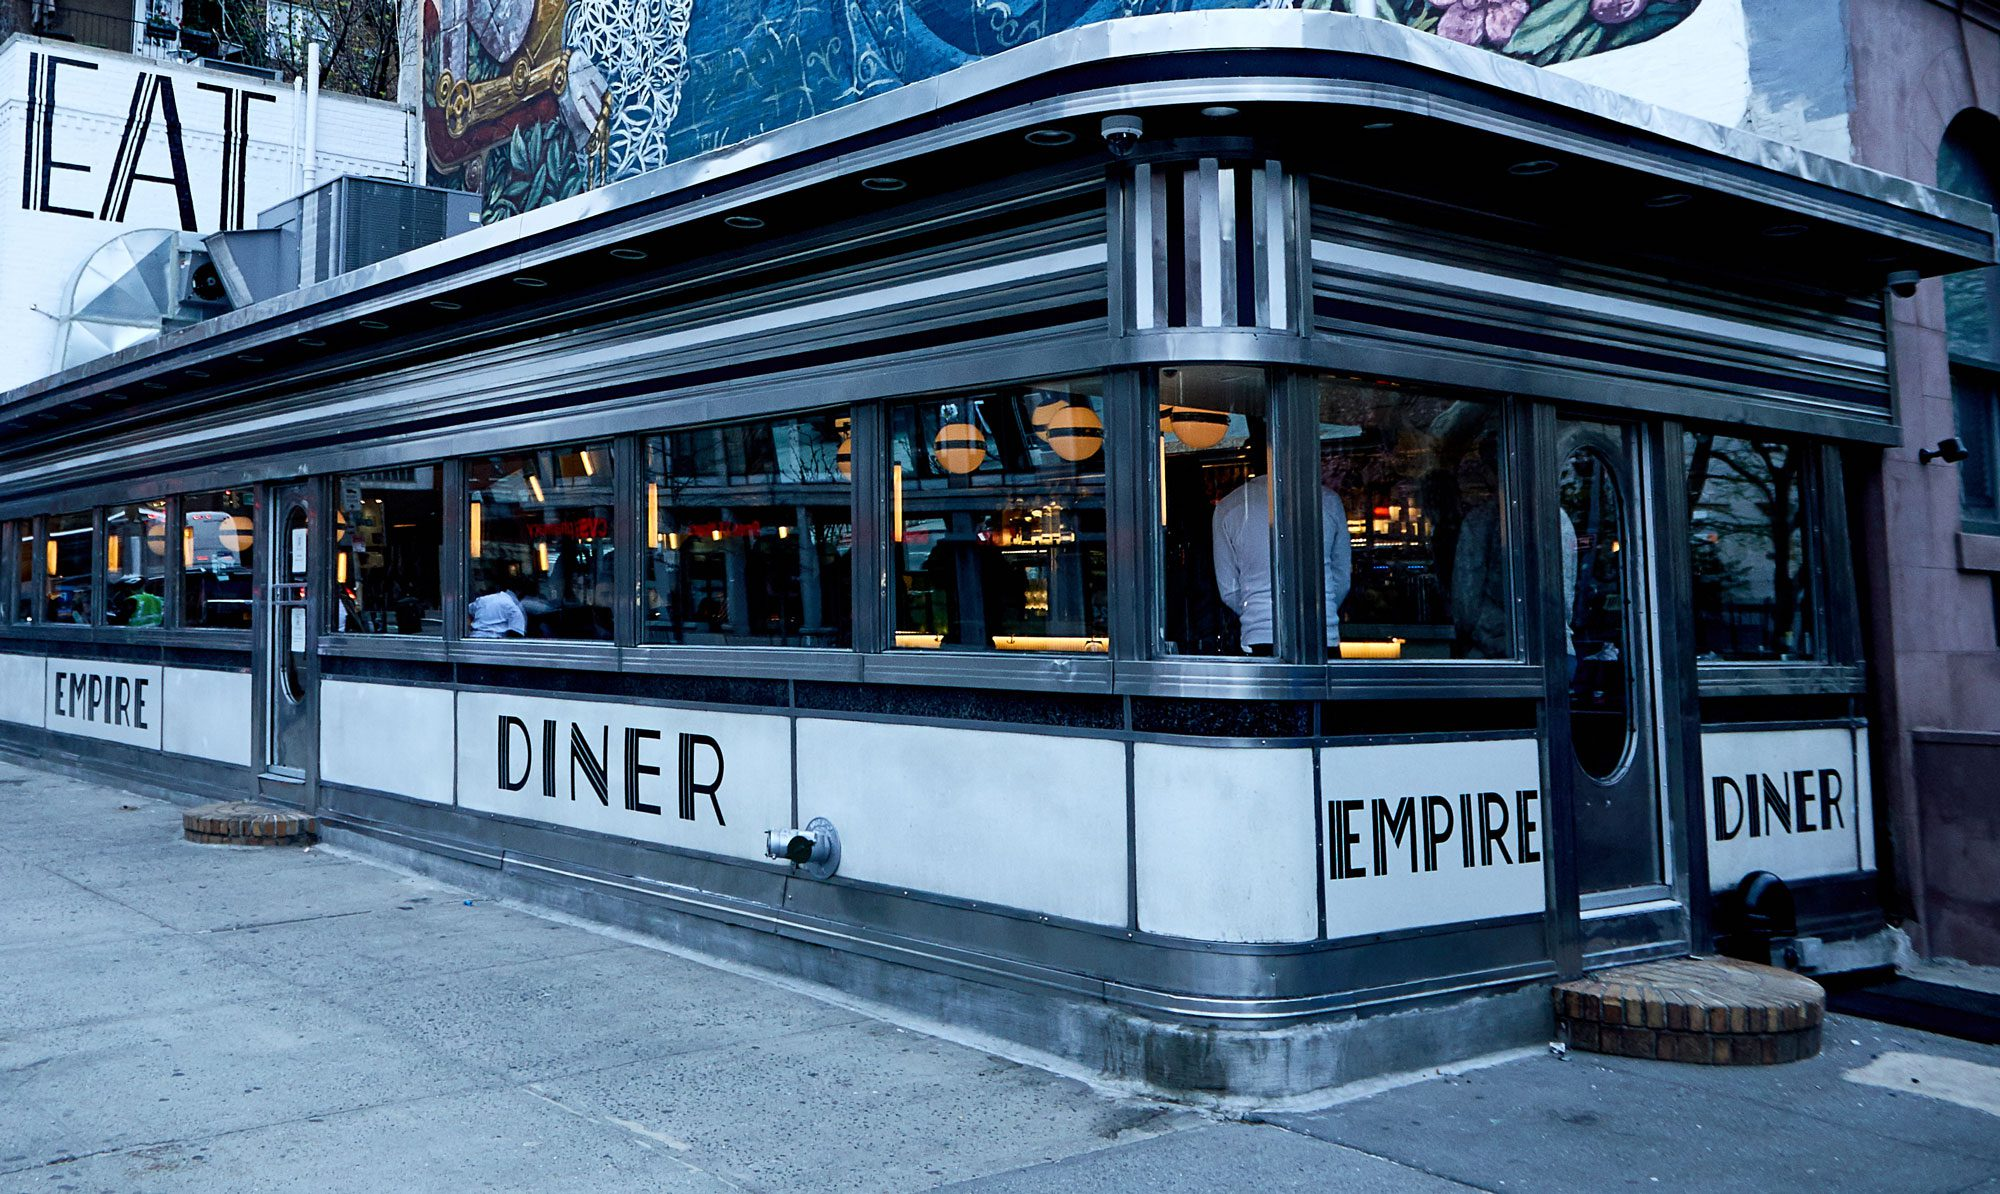 Empire diner for Diner picture